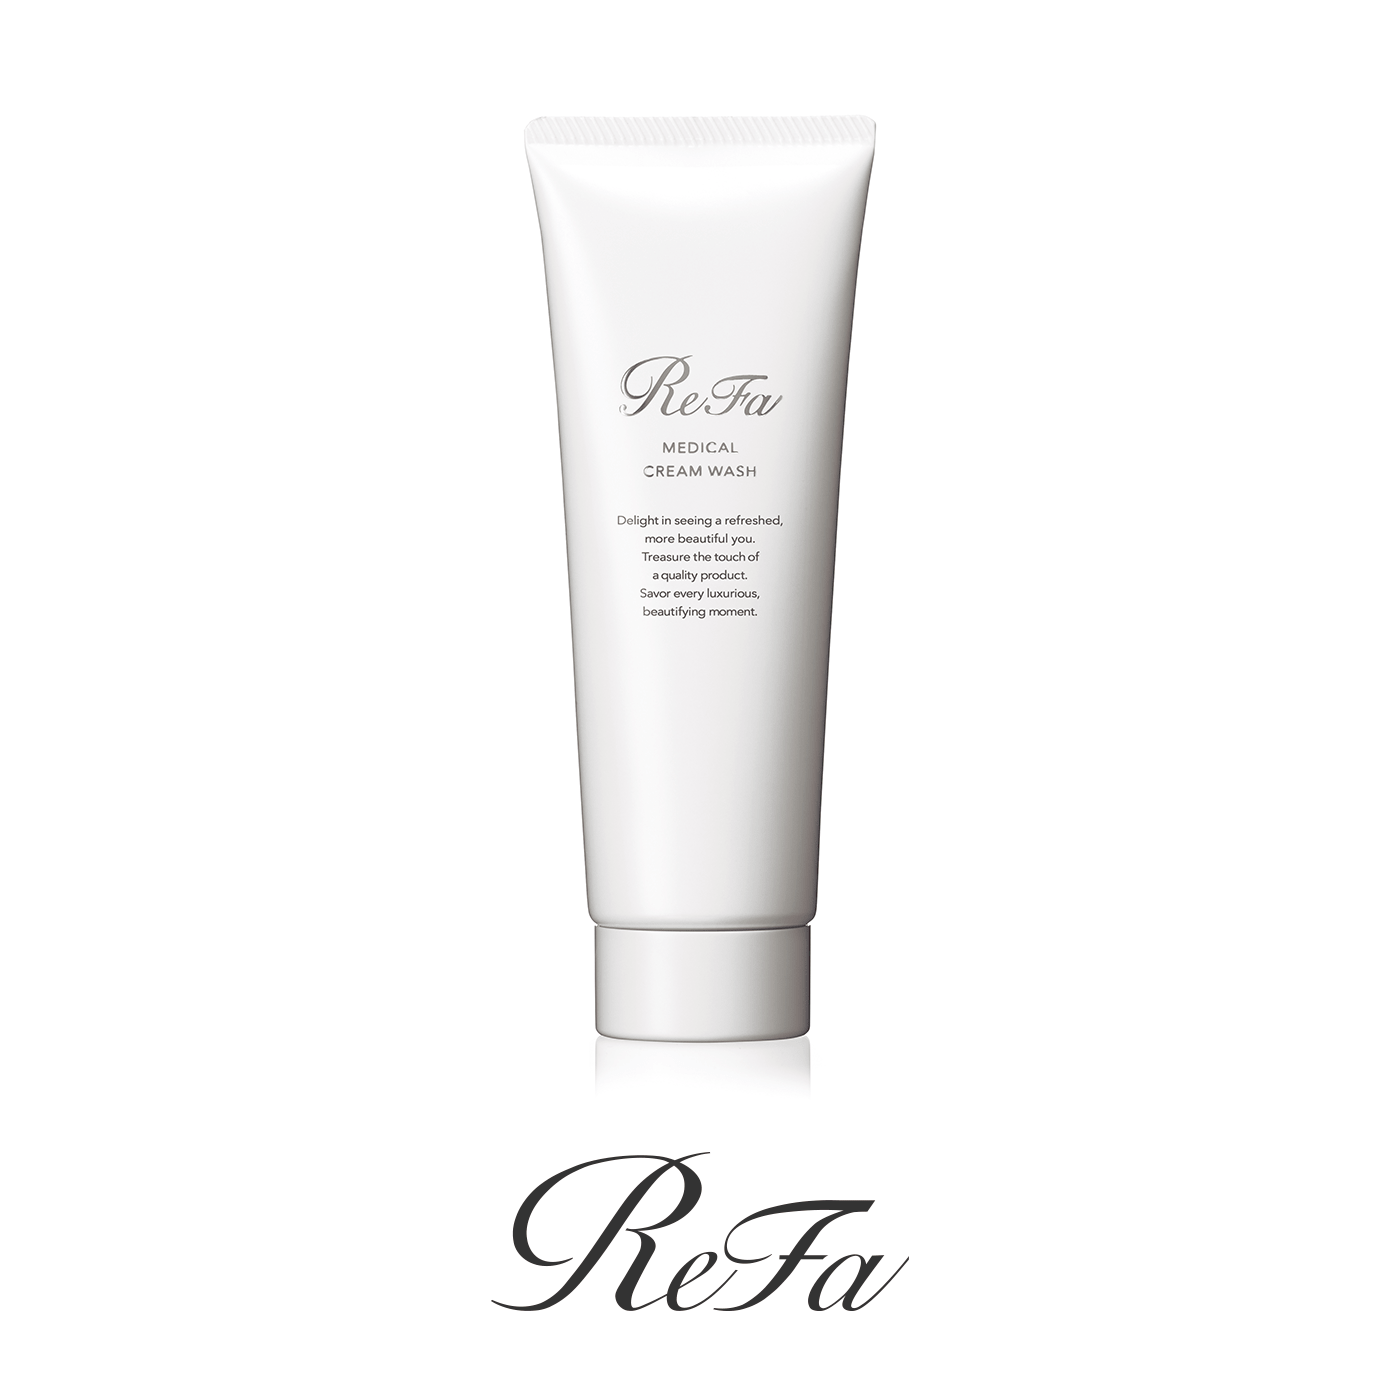 Introducing MEDICAL CREAM WASH that gently cleanses with a rich, fine foam.